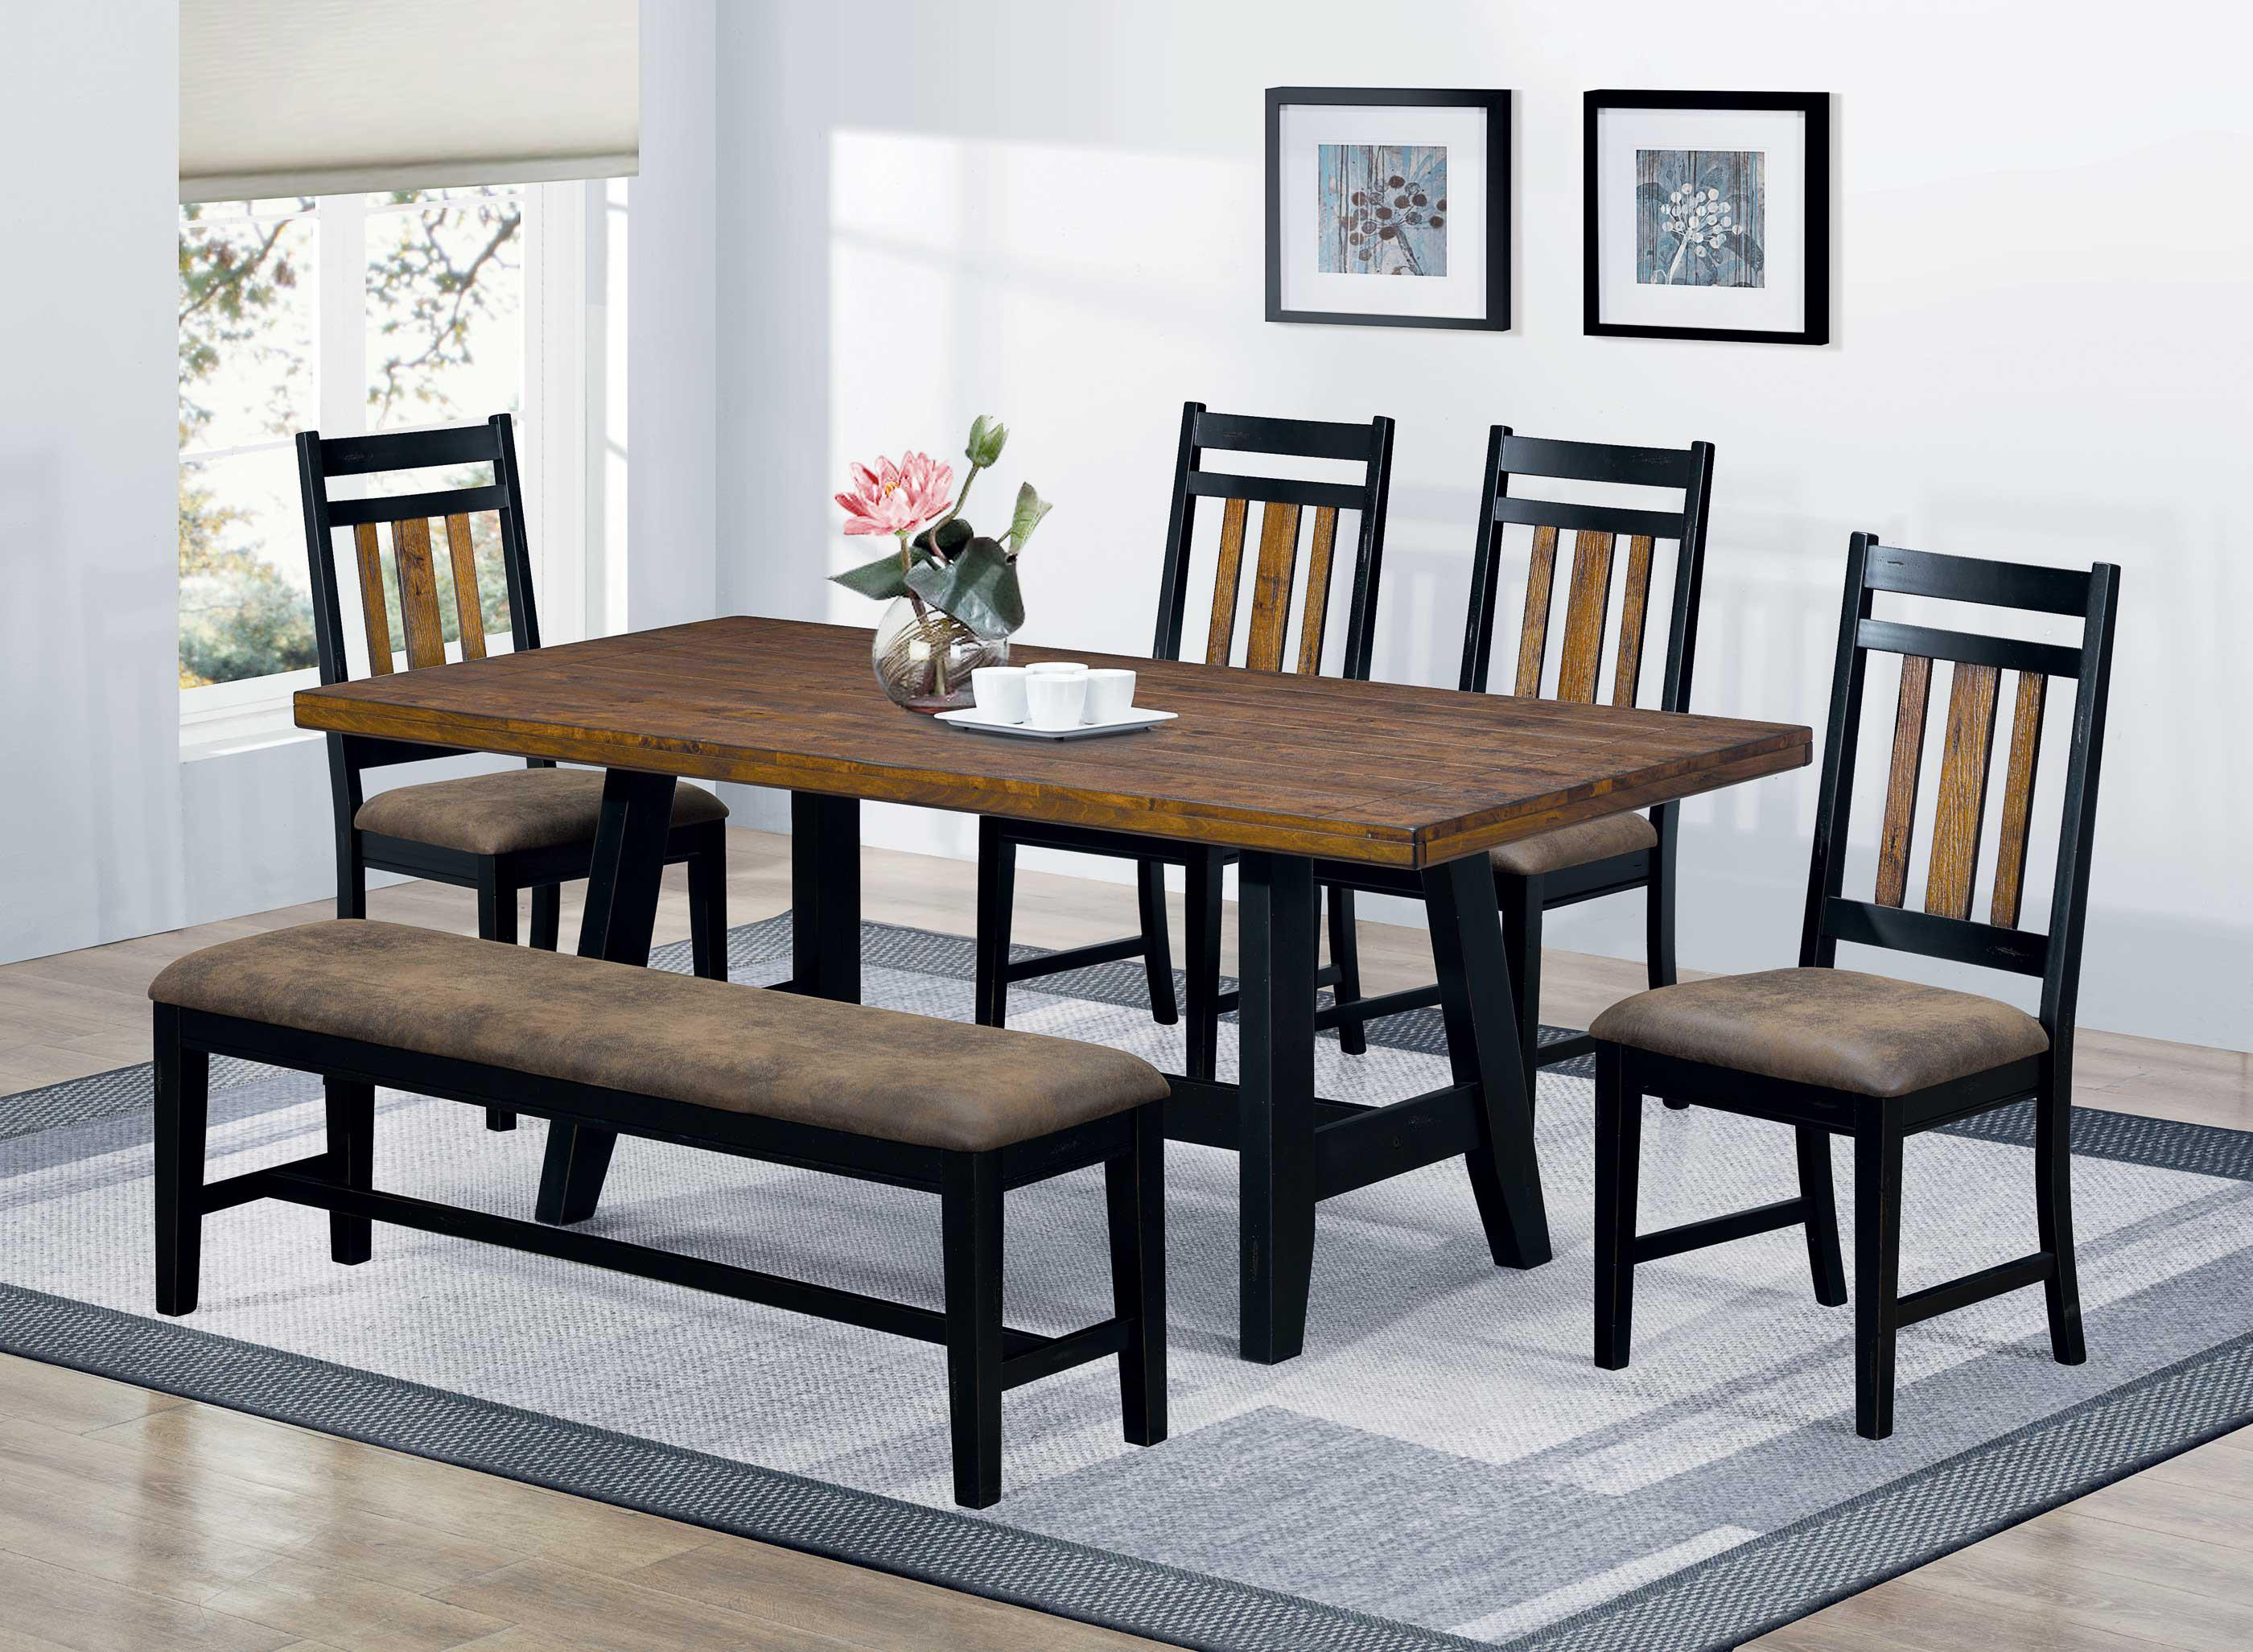 Waller 6 Piece Dining Table Set With Bench And Side Chairs